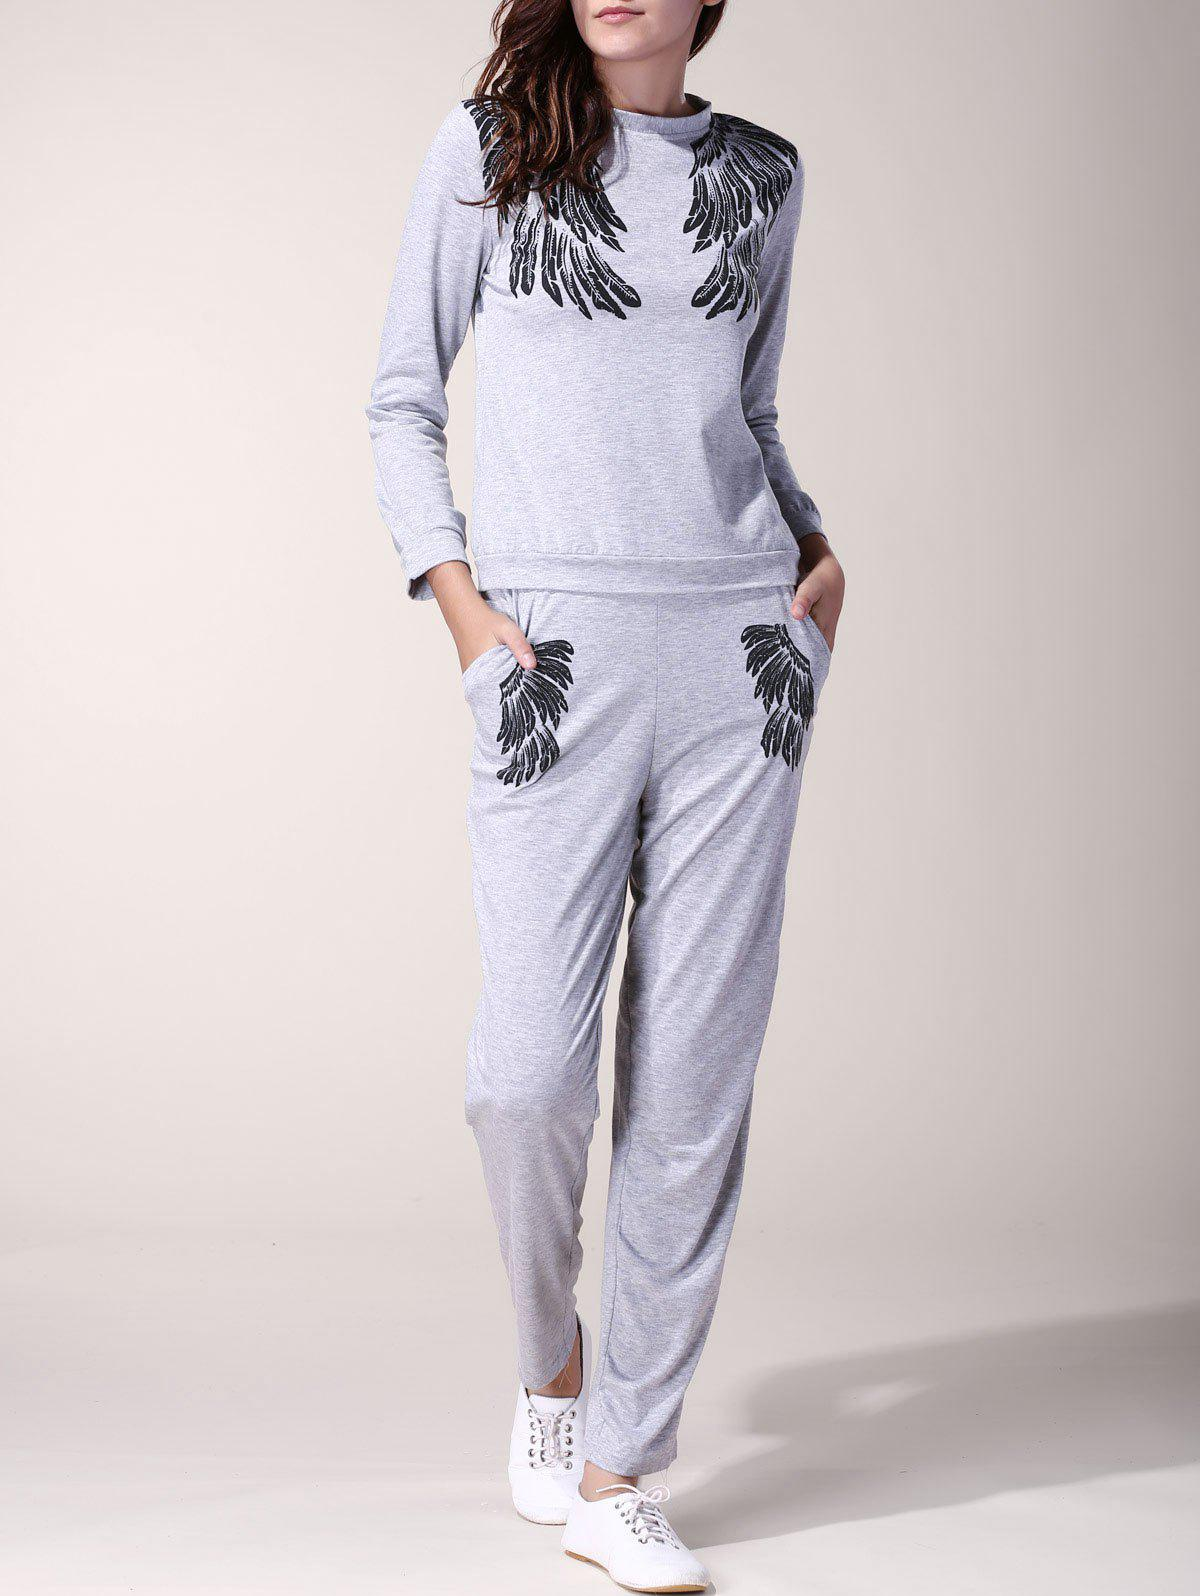 Casual Wings Printed Long Sleeve Pullover Sweatshirt and Jogger Pants Twinset For Women - GRAY S